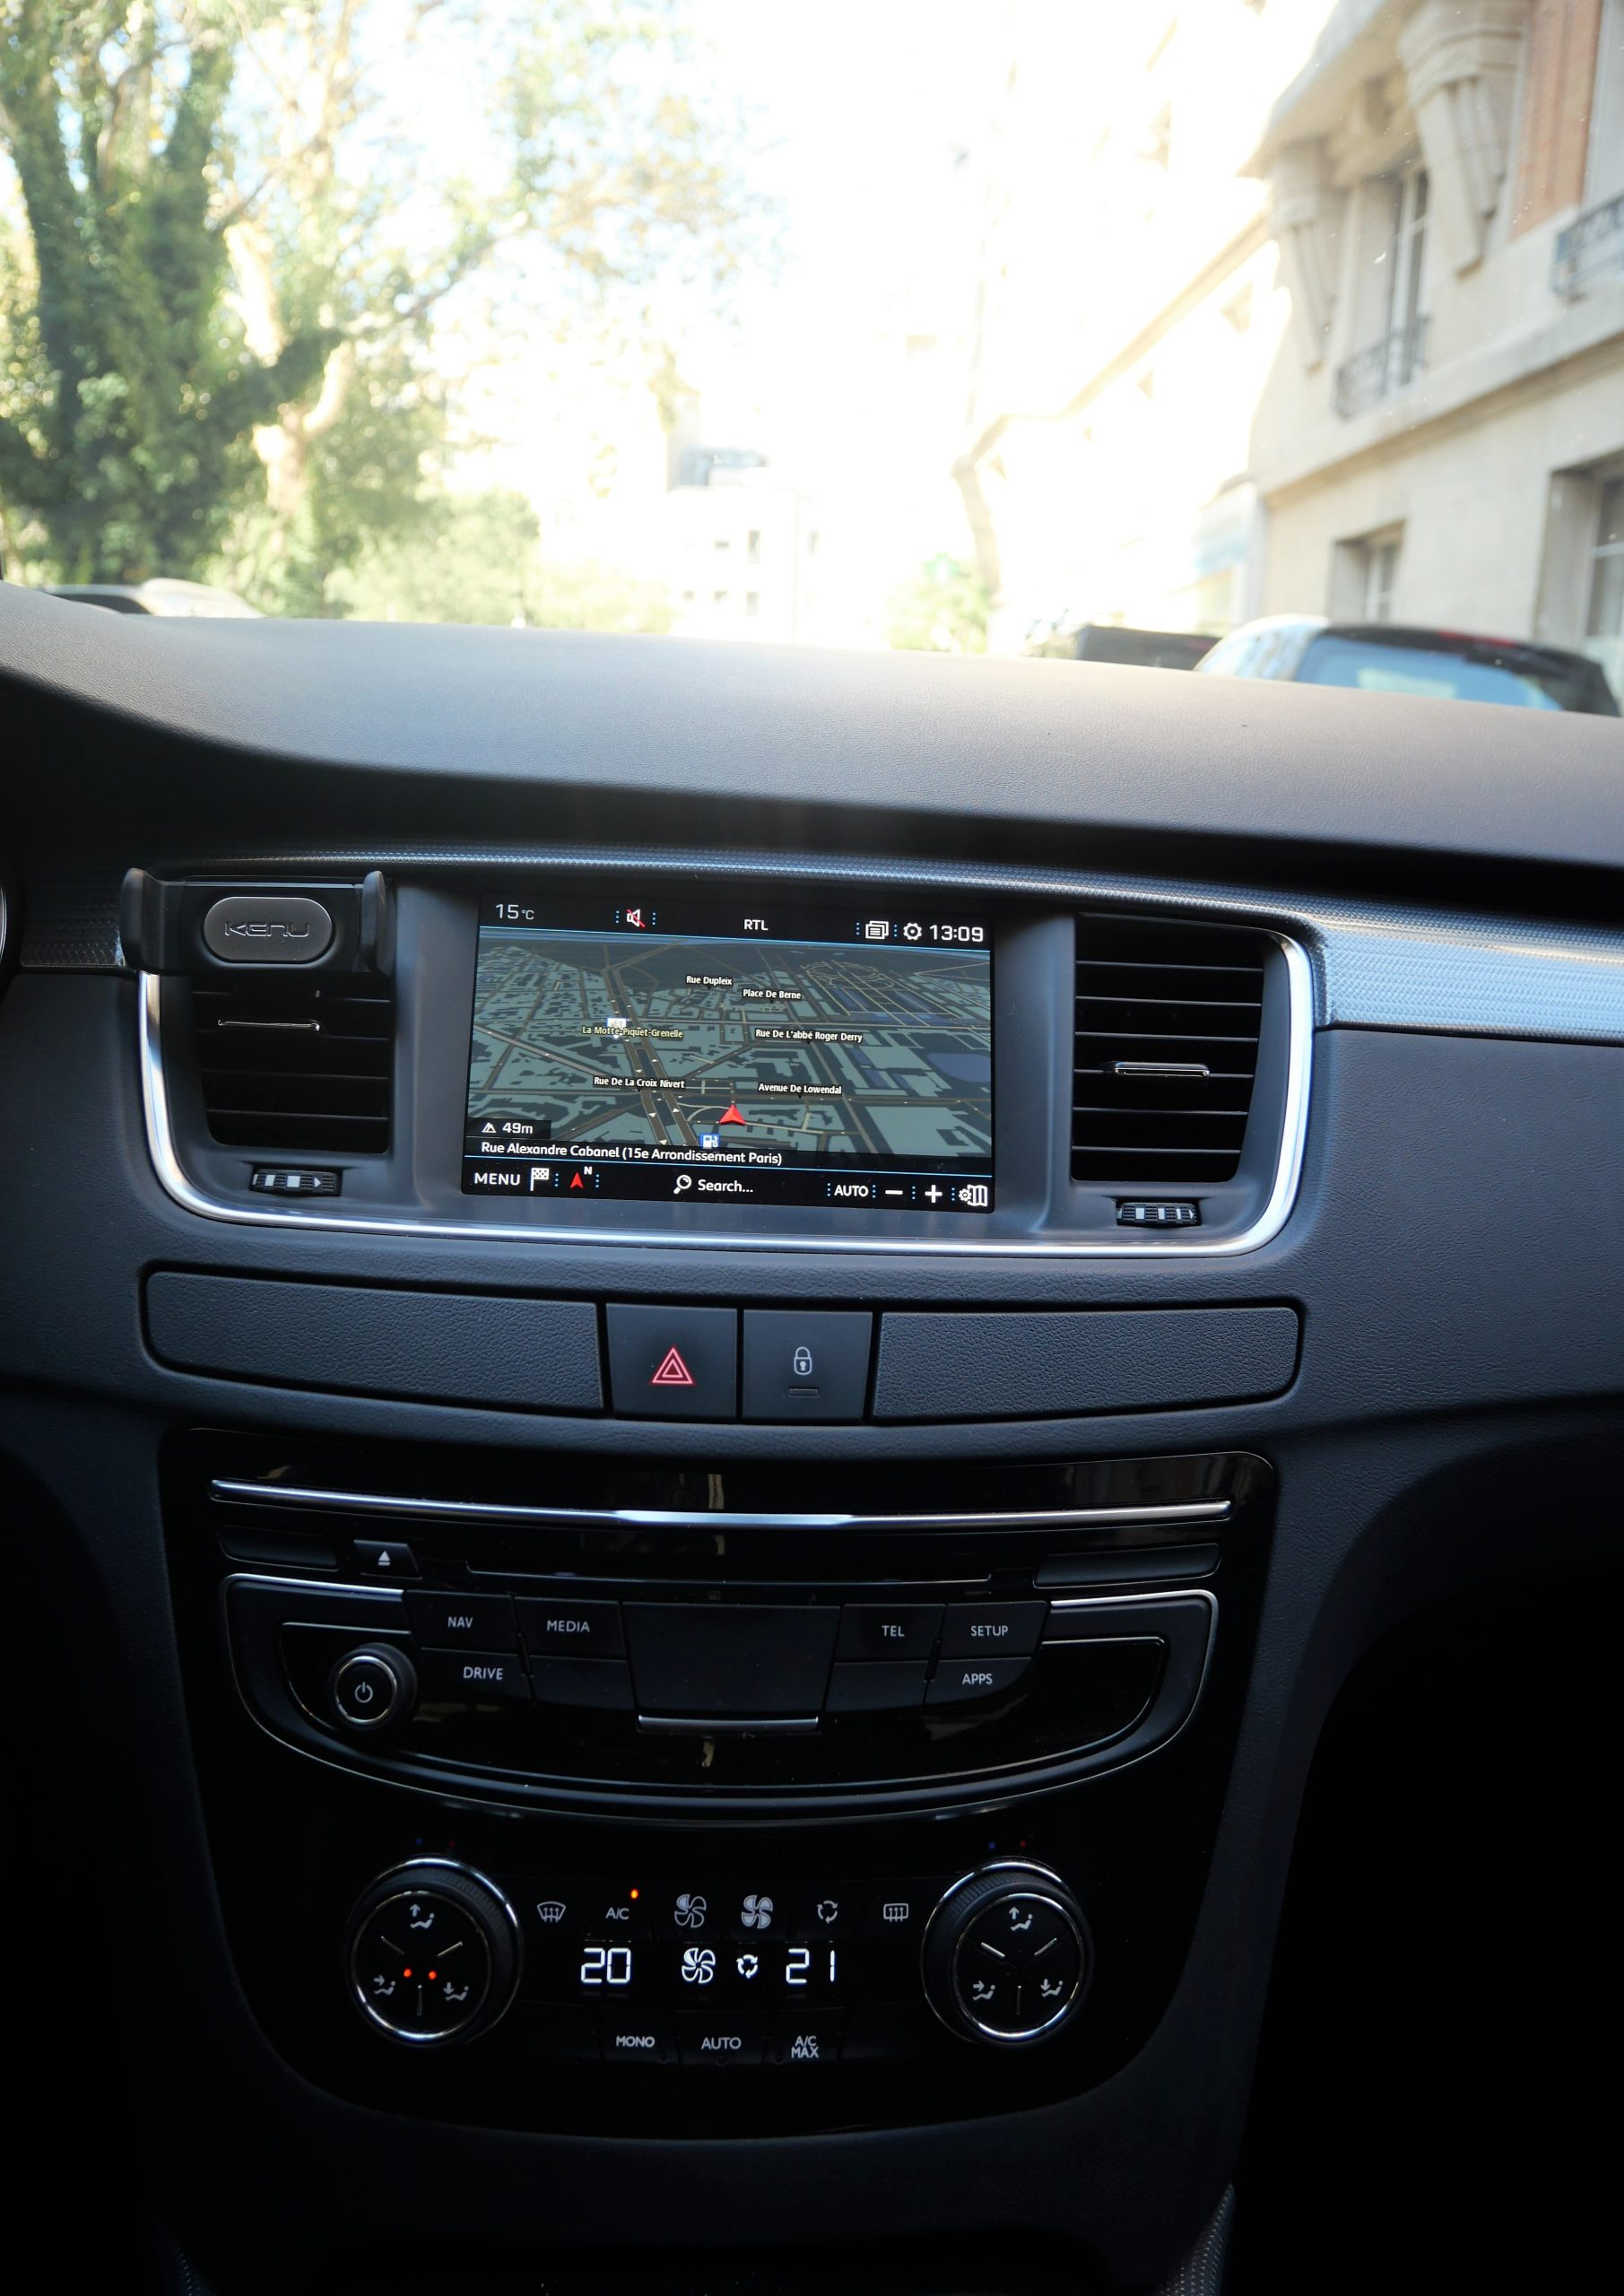 PEUGEOT 508 Allure Phase 2 1.6 BlueHDI S&S 120 ch 15